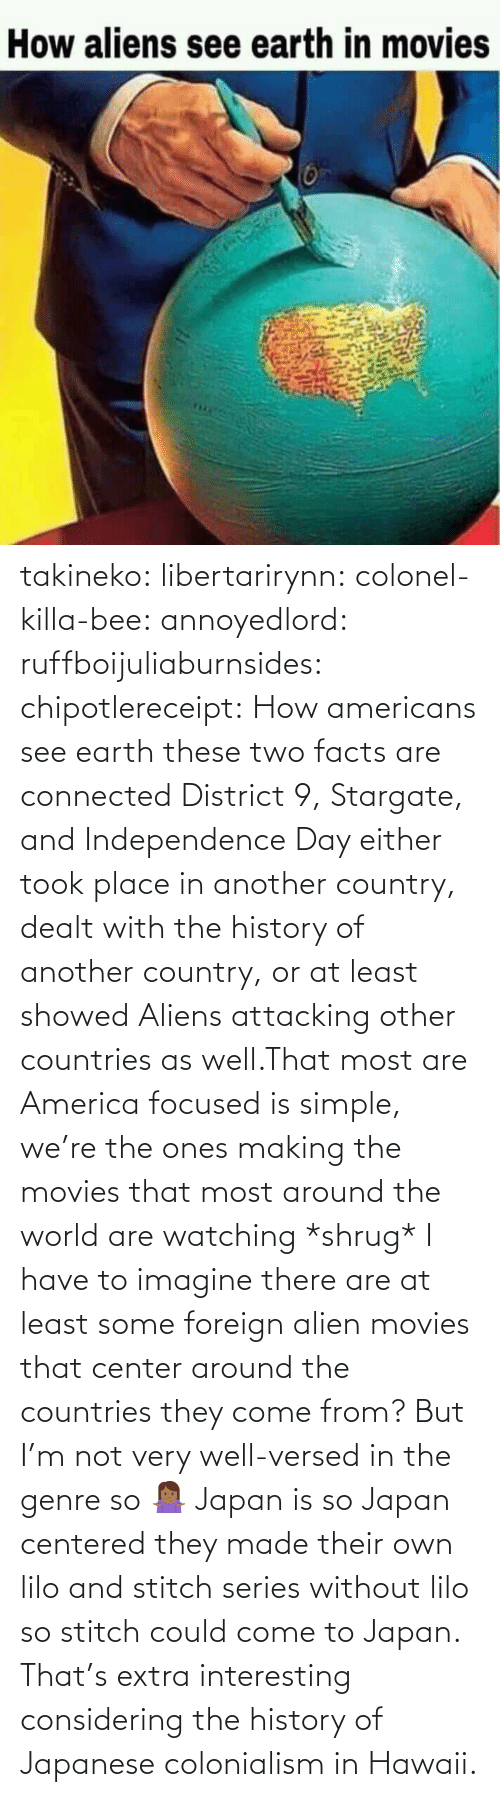 But: takineko:  libertarirynn:  colonel-killa-bee:  annoyedlord: ruffboijuliaburnsides:  chipotlereceipt: How americans see earth these two facts are connected     District 9, Stargate, and Independence Day either took place in another country, dealt with the history of another country, or at least showed Aliens attacking other countries as well.That most are America focused is simple, we're the ones making the movies that most around the world are watching *shrug*   I have to imagine there are at least some foreign alien movies that center around the countries they come from? But I'm not very well-versed in the genre so 🤷🏾‍♀️   Japan is so Japan centered they made their own lilo and stitch series without lilo so stitch could come to Japan.    That's extra interesting considering the history of Japanese colonialism in Hawaii.